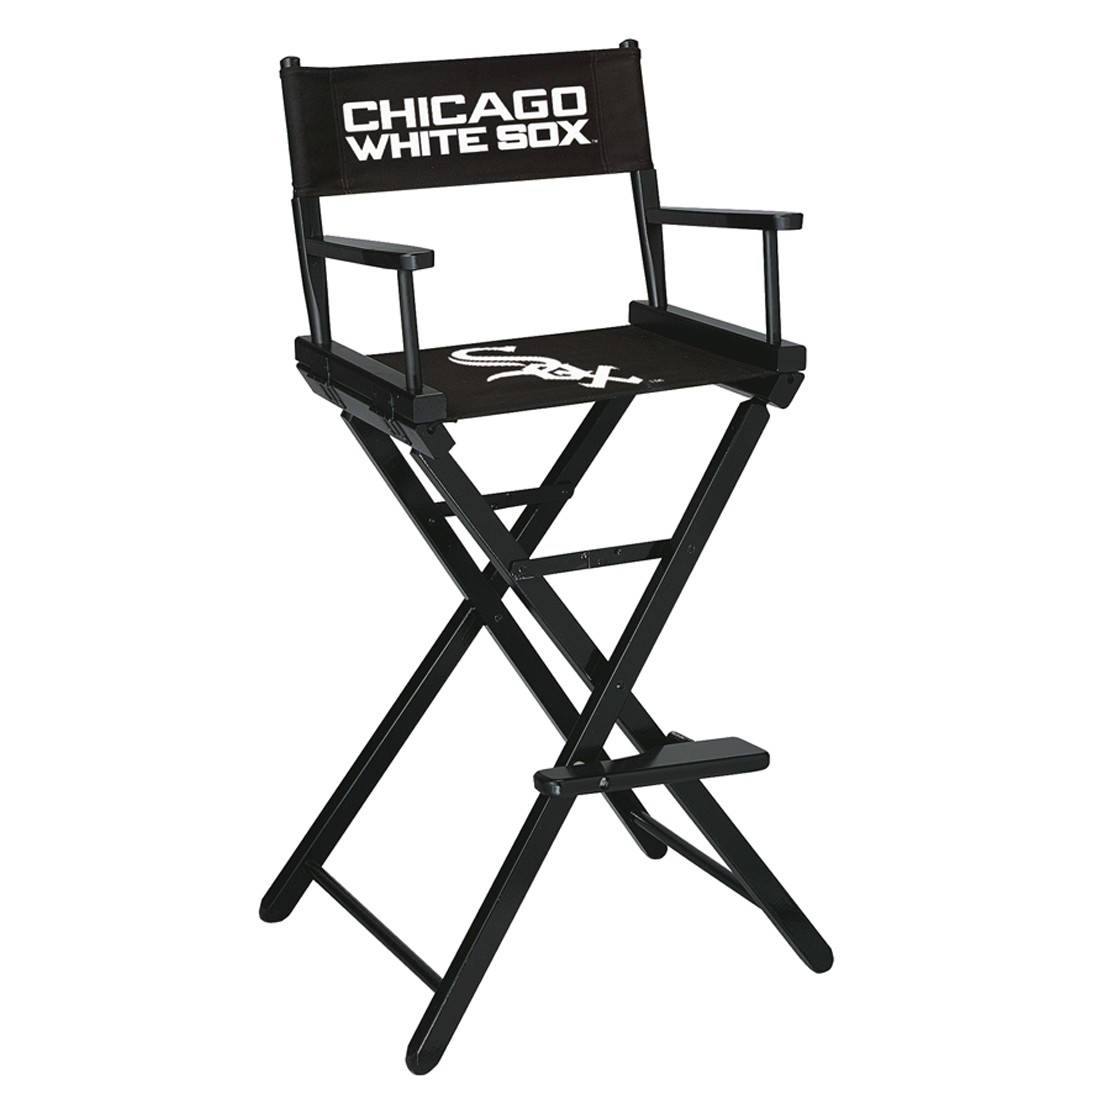 CHICAGO WHITE SOX BAR HEIGHT DIRECTORS CHAIR